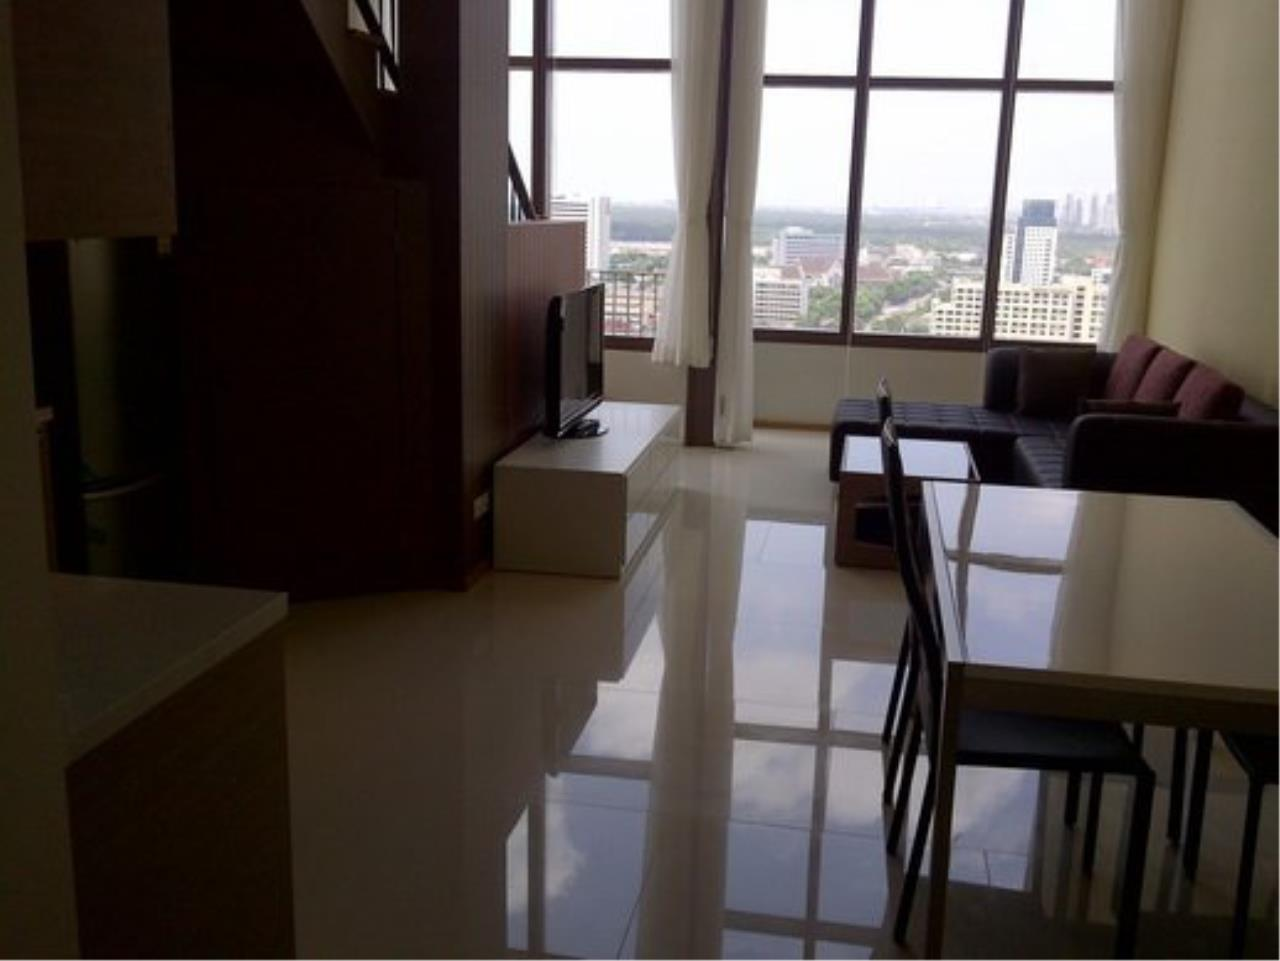 Piri Property Agency's Duplex 1 Bedroom Condo in the Emporio Place building for rent on high floor 6